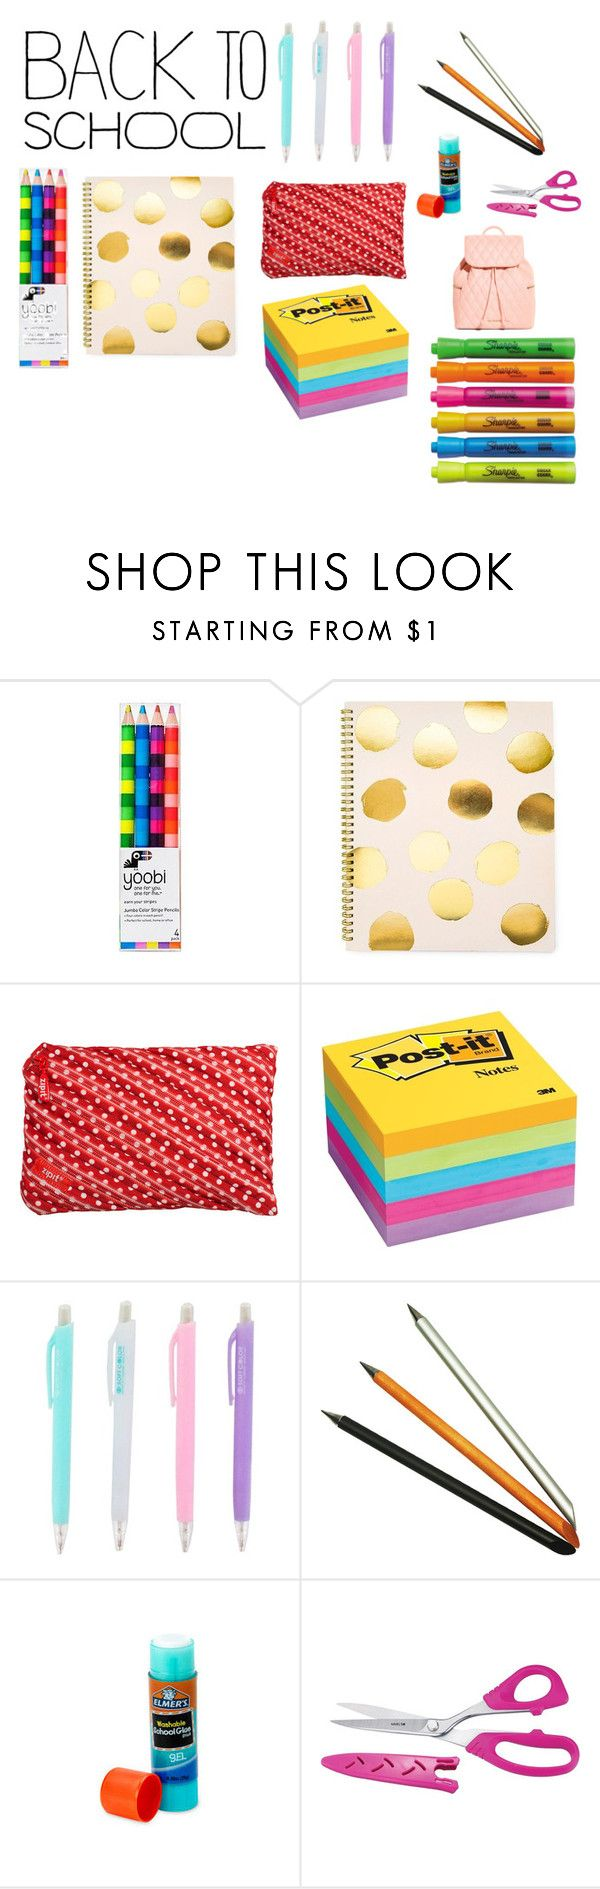 """""""school supplies"""" by vapitt ❤ liked on Polyvore featuring interior, interiors, interior design, home, home decor, interior decorating, Yoobi, Sugar Paper, ZIPIT and Post-It"""